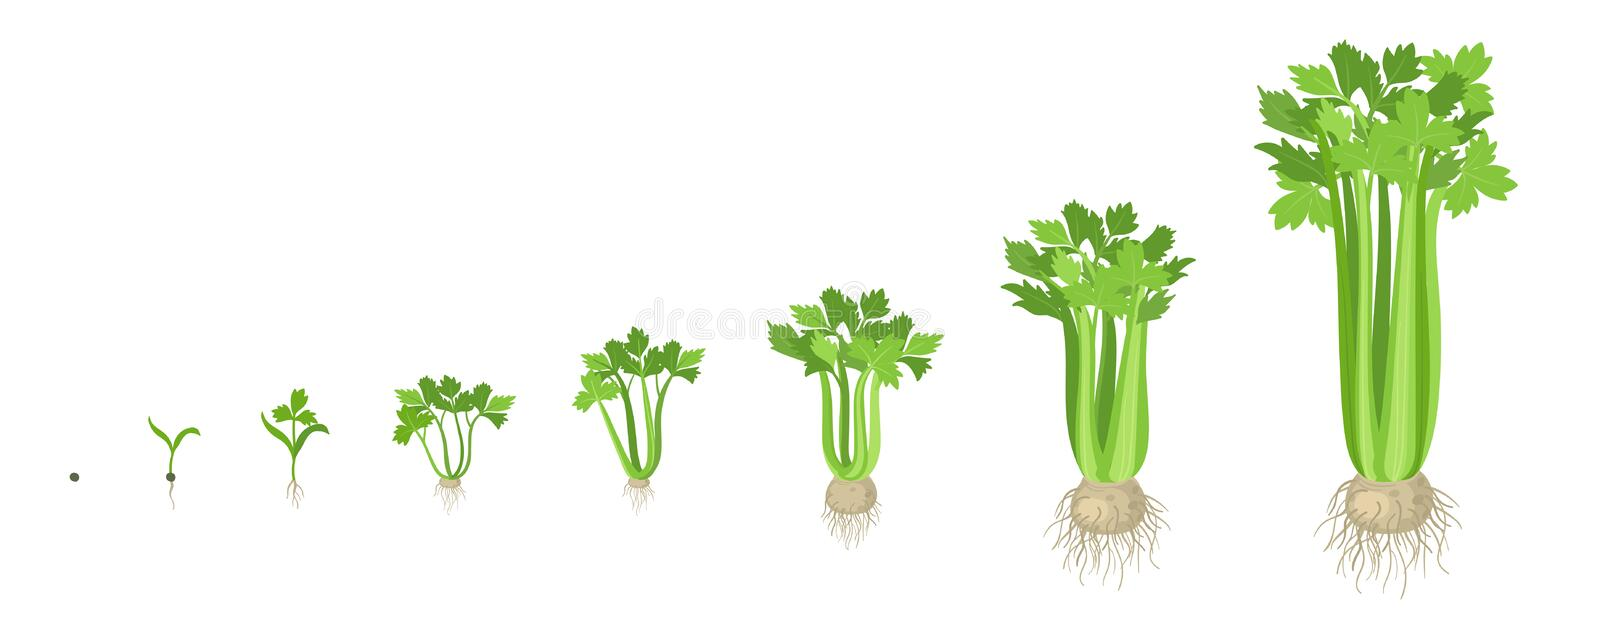 Crop stages of Celery. Growing Celery plant. Harvest growth vegetable. Apium graveolens. Vector flat Illustration. Crop stages of Celery. Growing Celery plant stock illustration